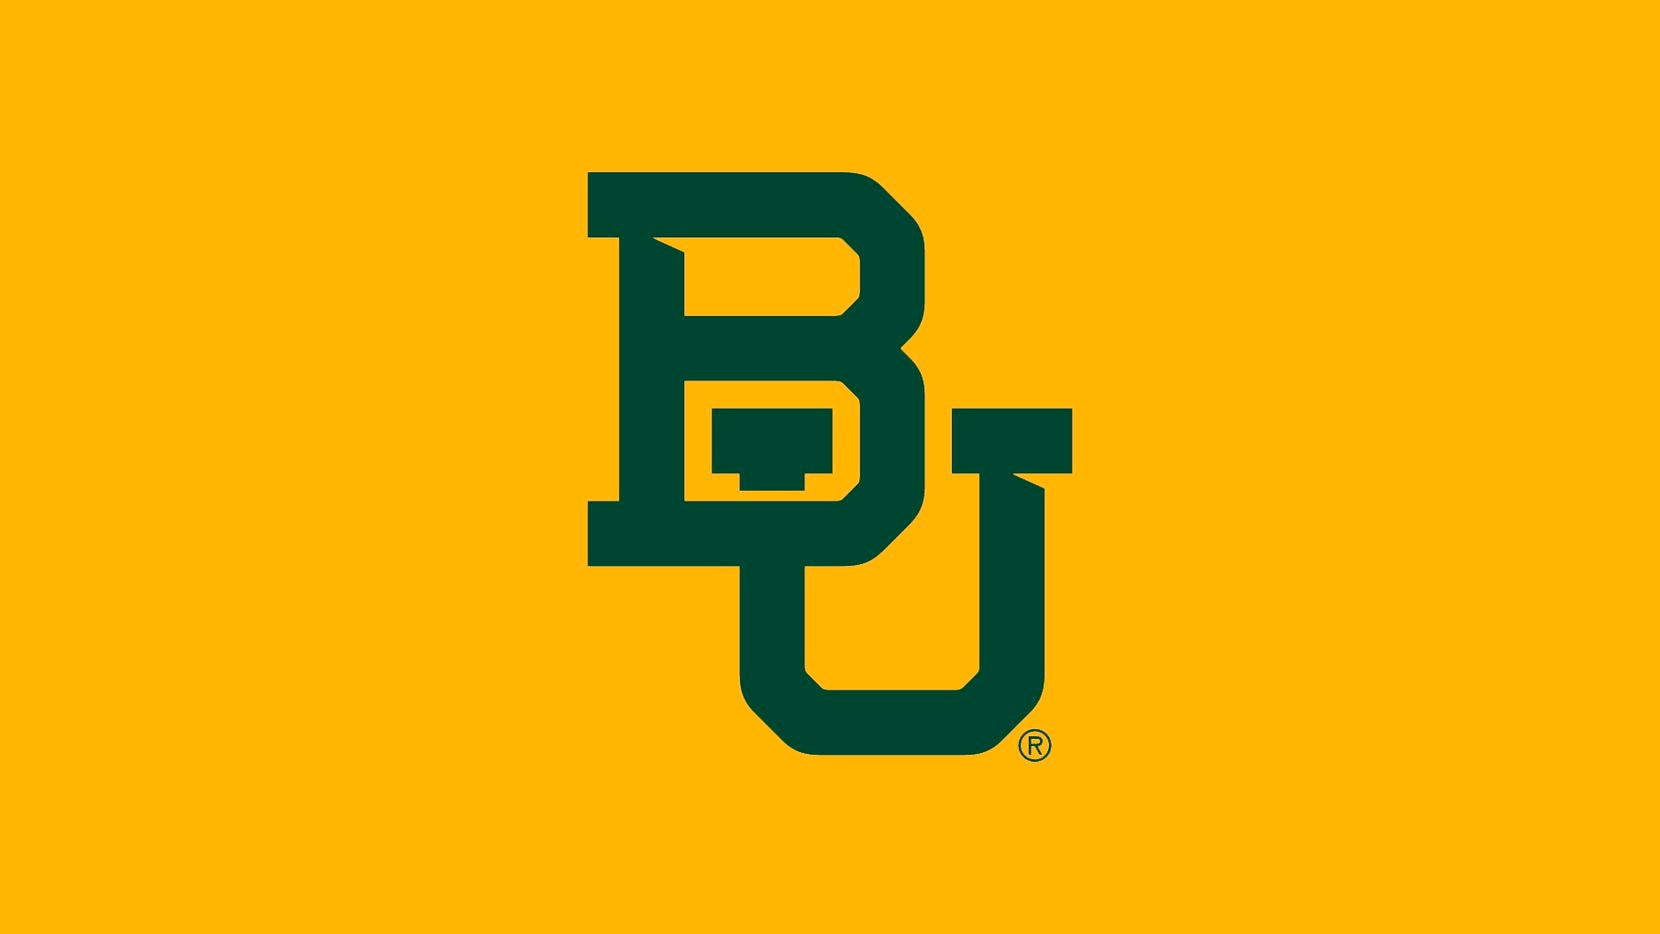 Baylor Bears primary logo.